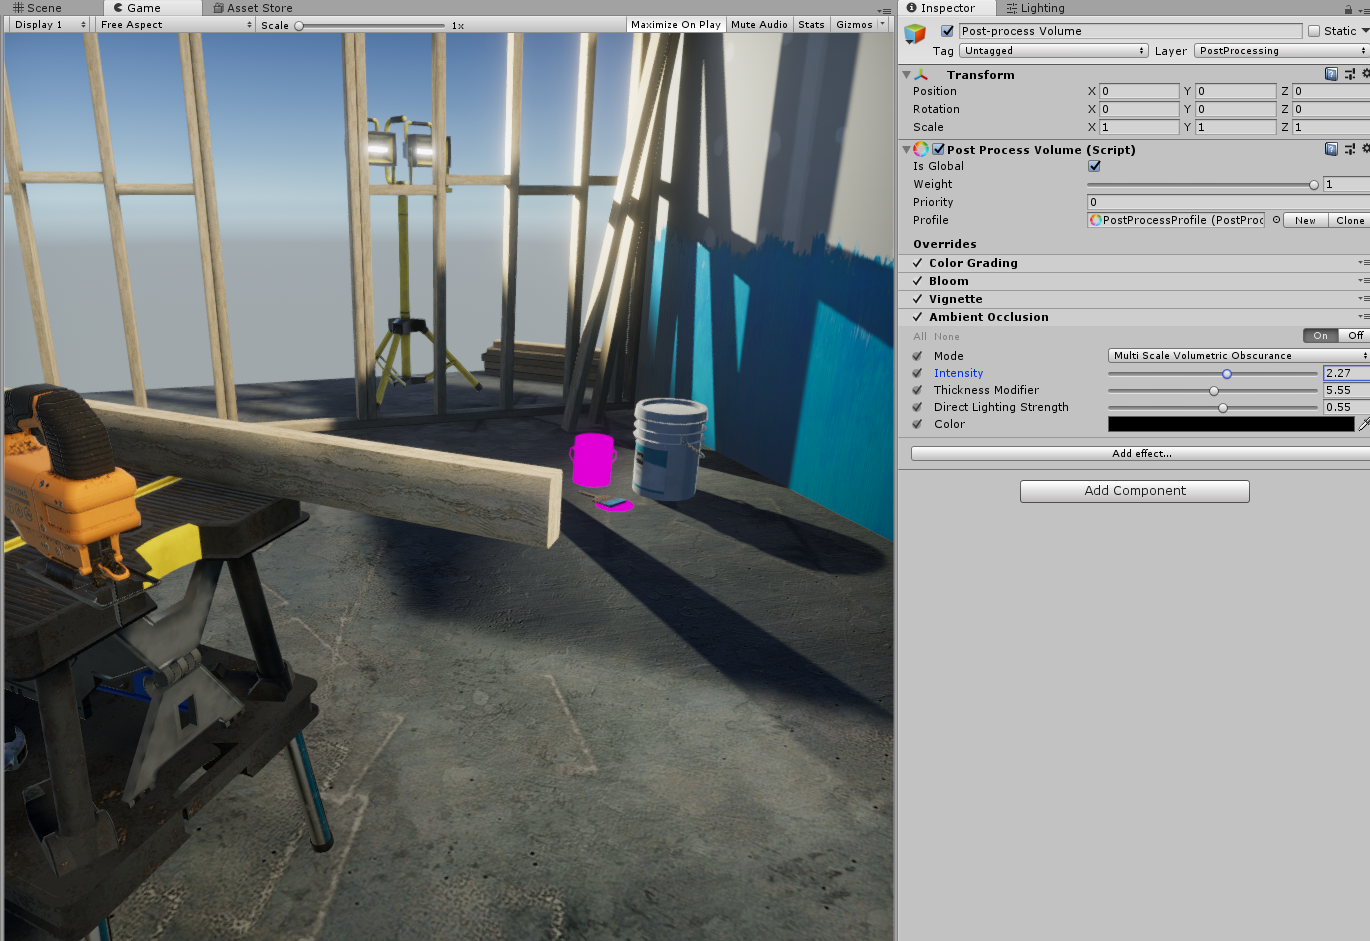 Post Process Ambient Occlusion not working with LWRP - Unity Forum